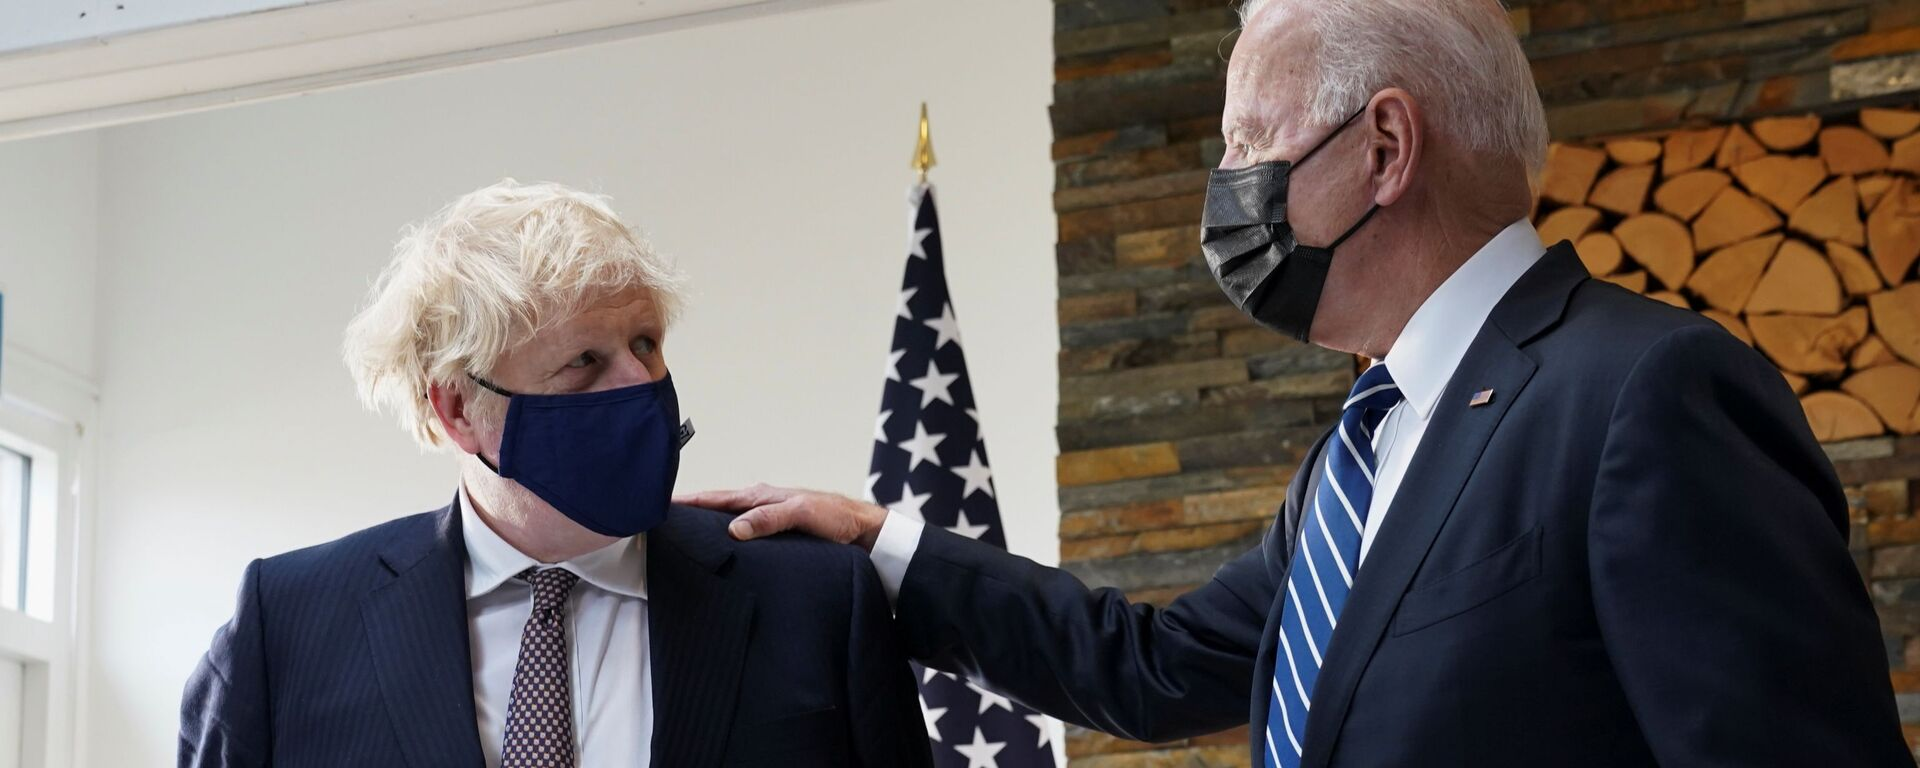 U.S. President Joe Biden speaks with Britain's Prime Minister Boris Johnson, as they look at historical documents and artefacts relating to the Atlantic Charter during their meeting, at Carbis Bay Hotel, Carbis Bay, Cornwall, Britain June 10, 2021  - Sputnik International, 1920, 13.09.2021